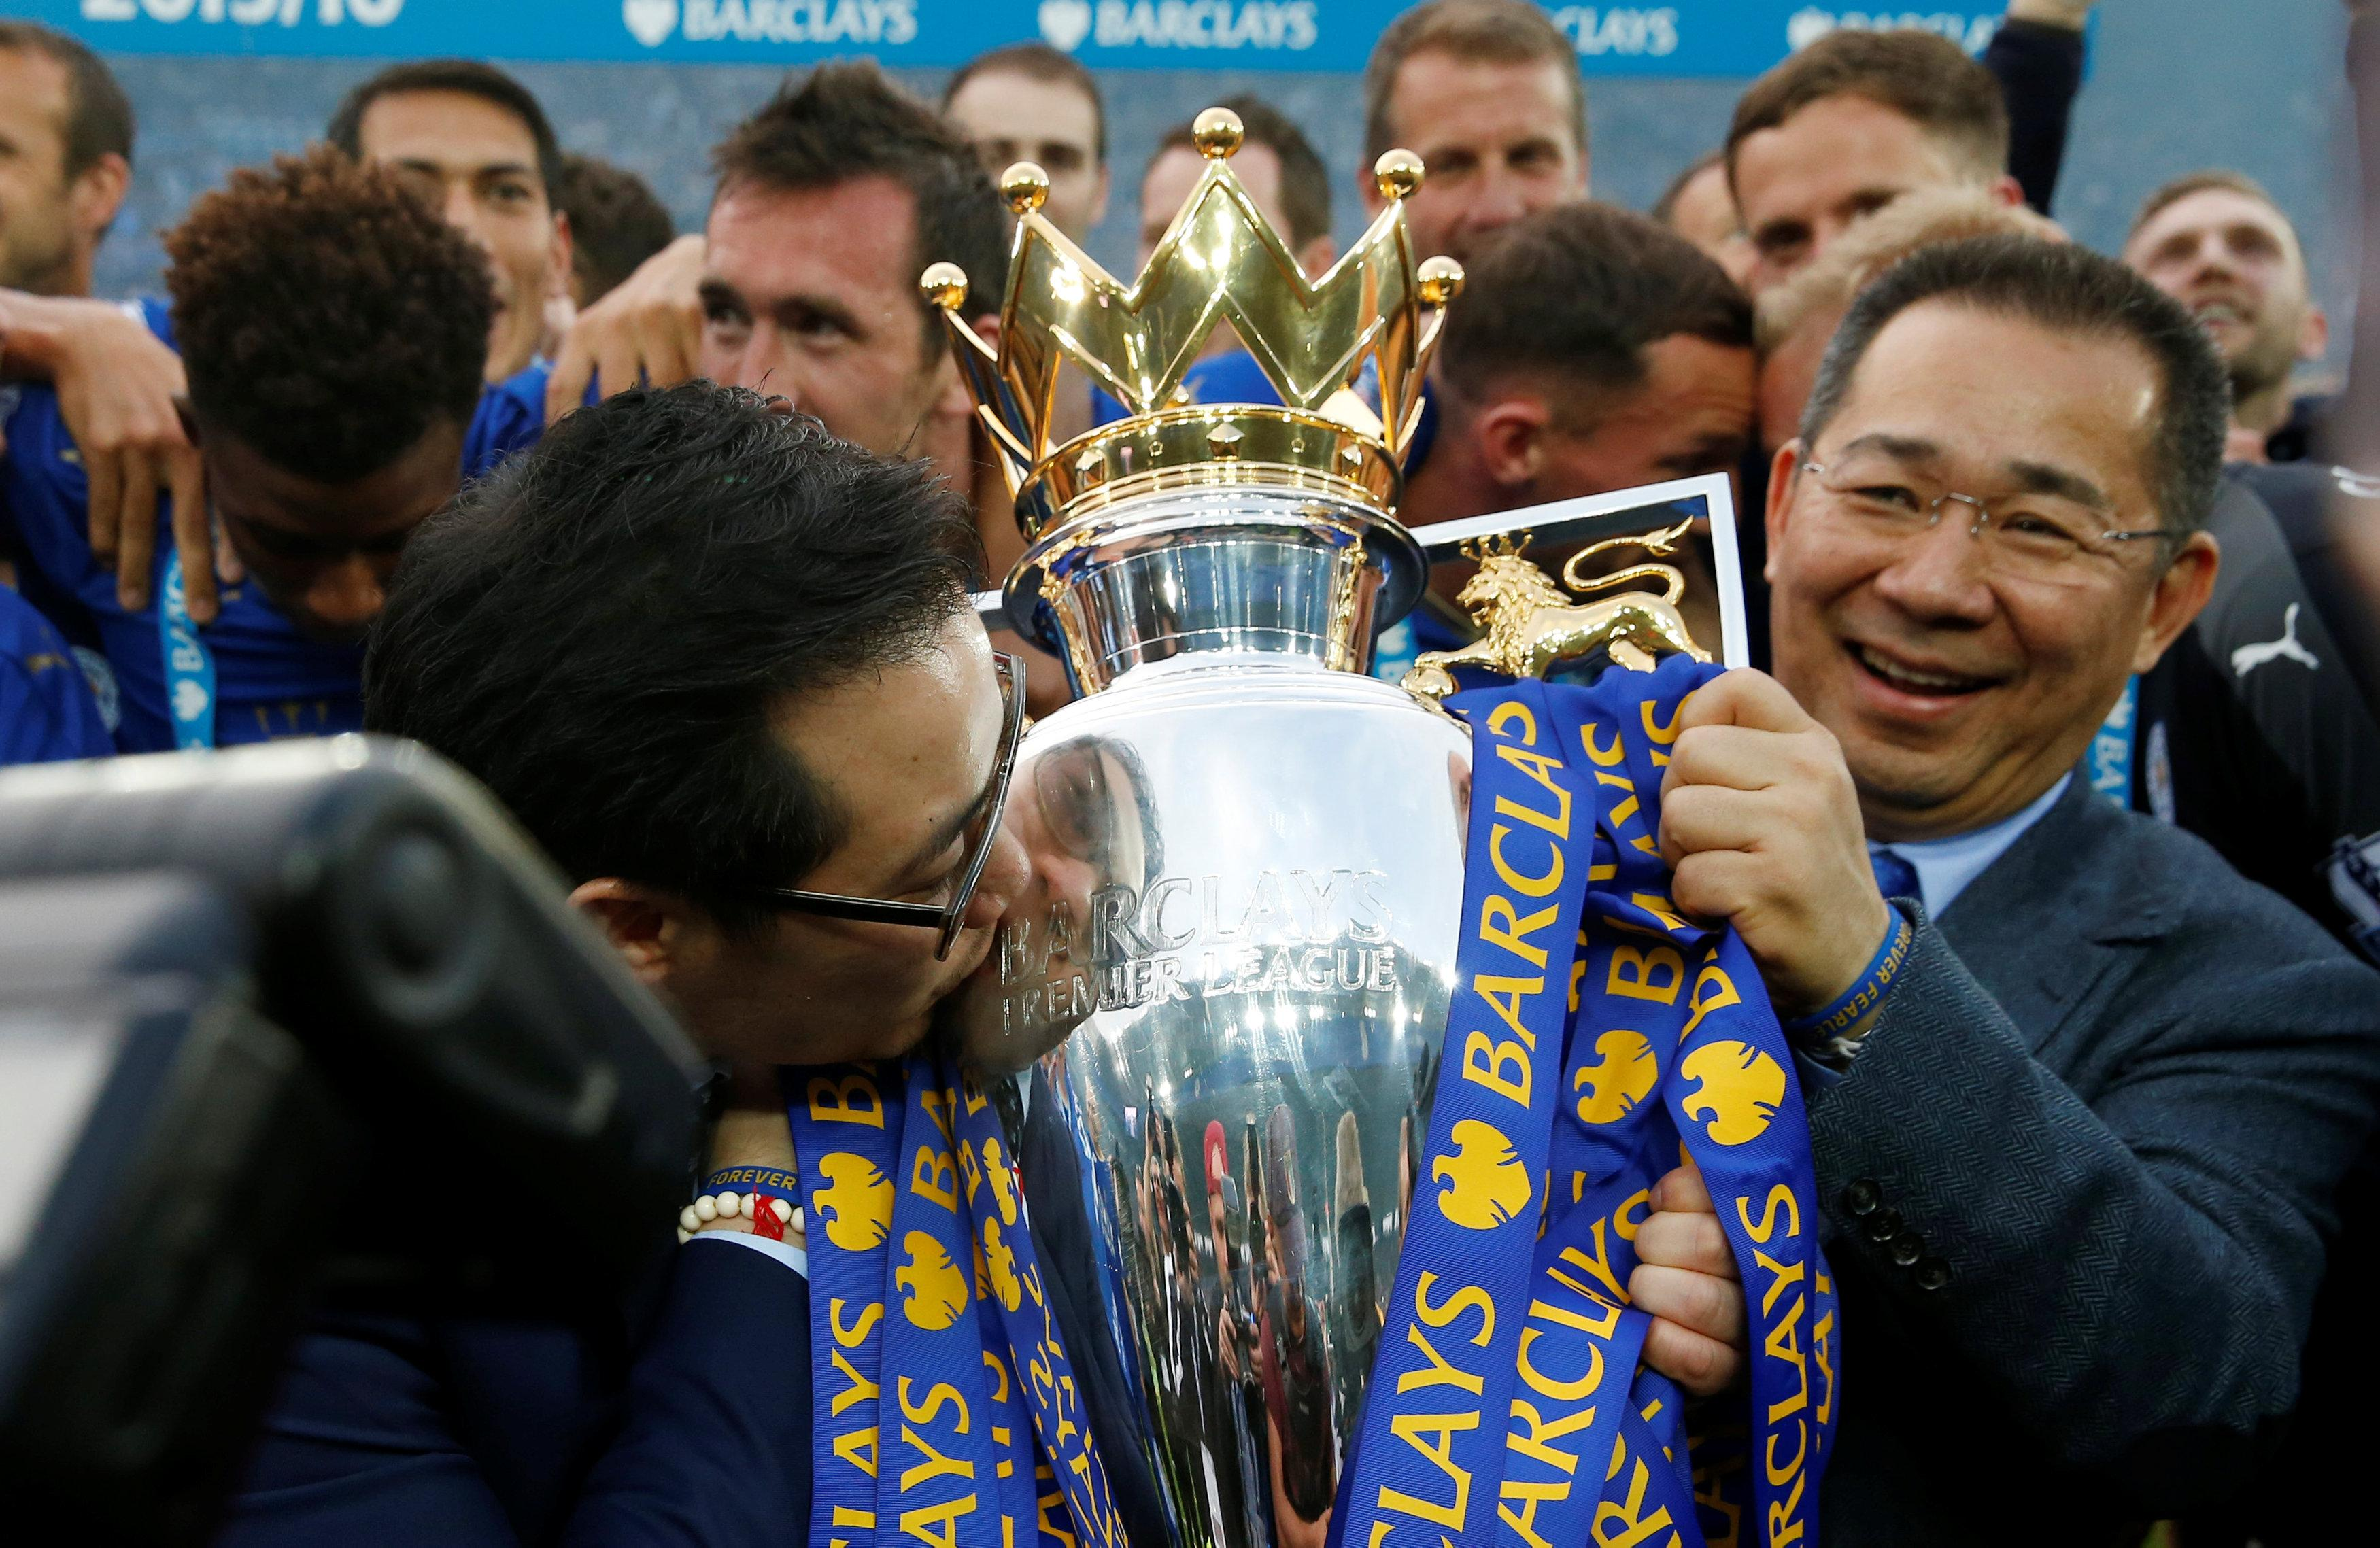 Vichai Srivaddhanaprabha lifting the Premier League trophy in 2016